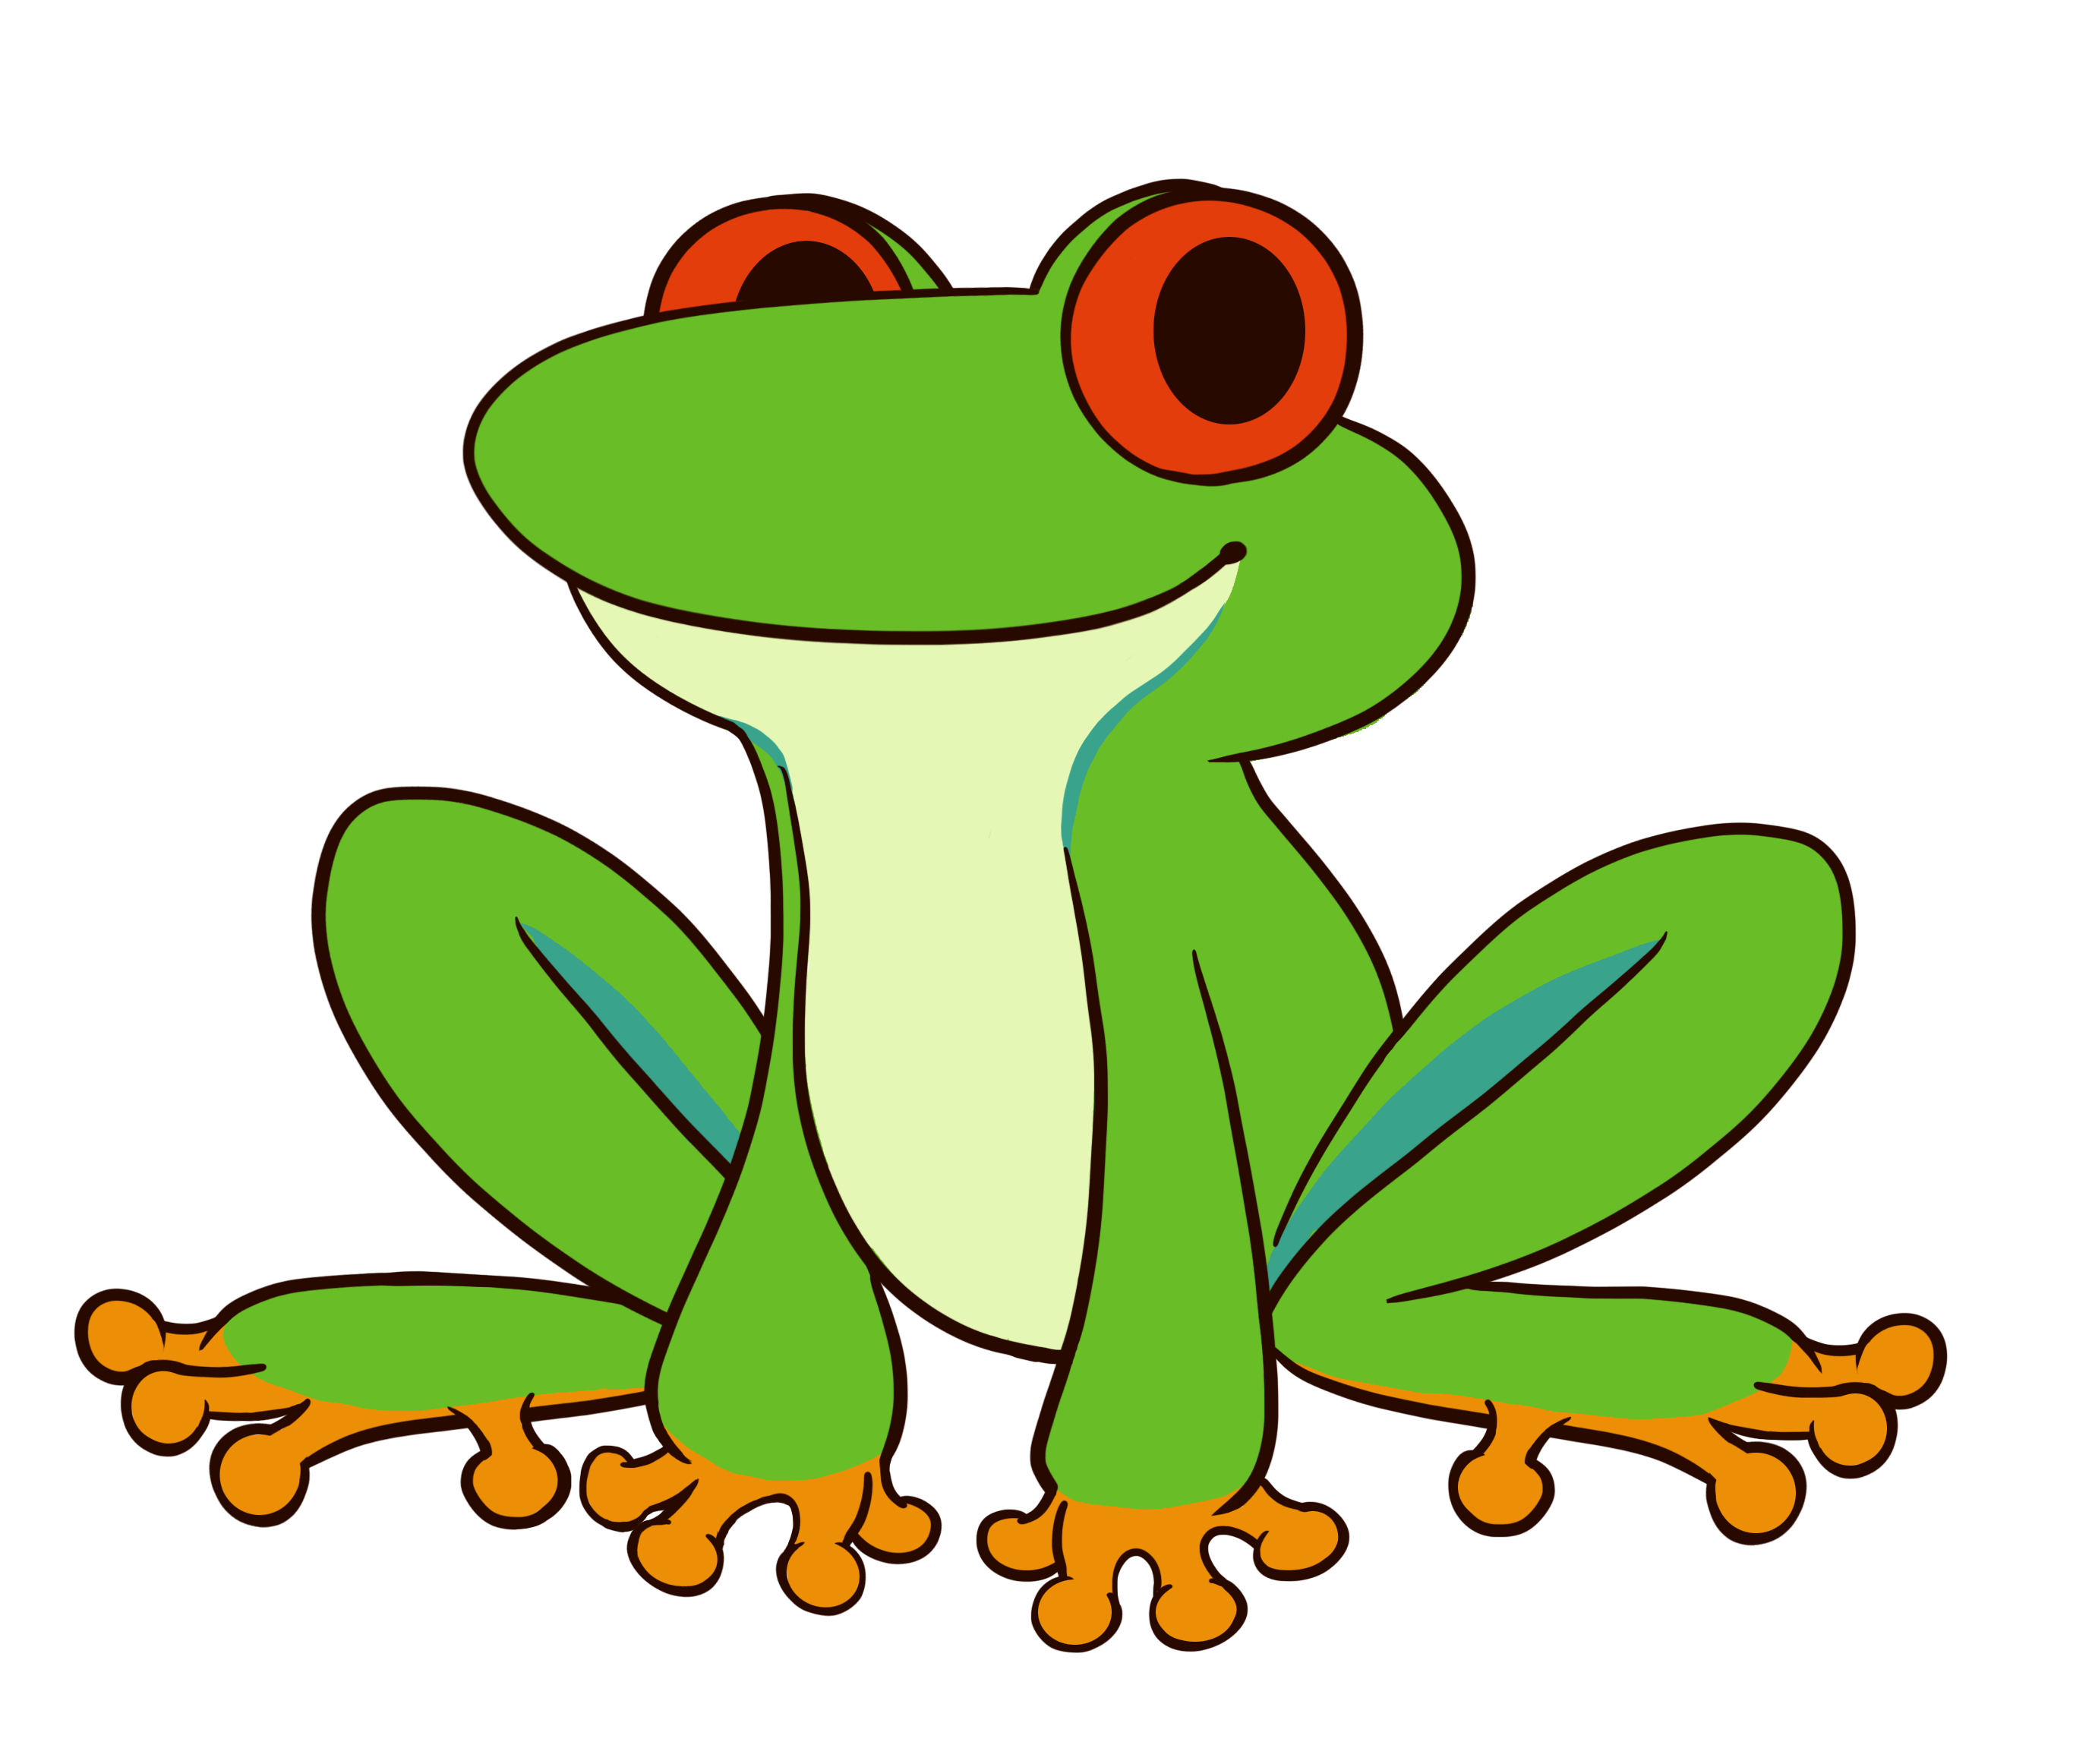 Free Animated Frog, Download Free Clip Art, Free Clip Art on.